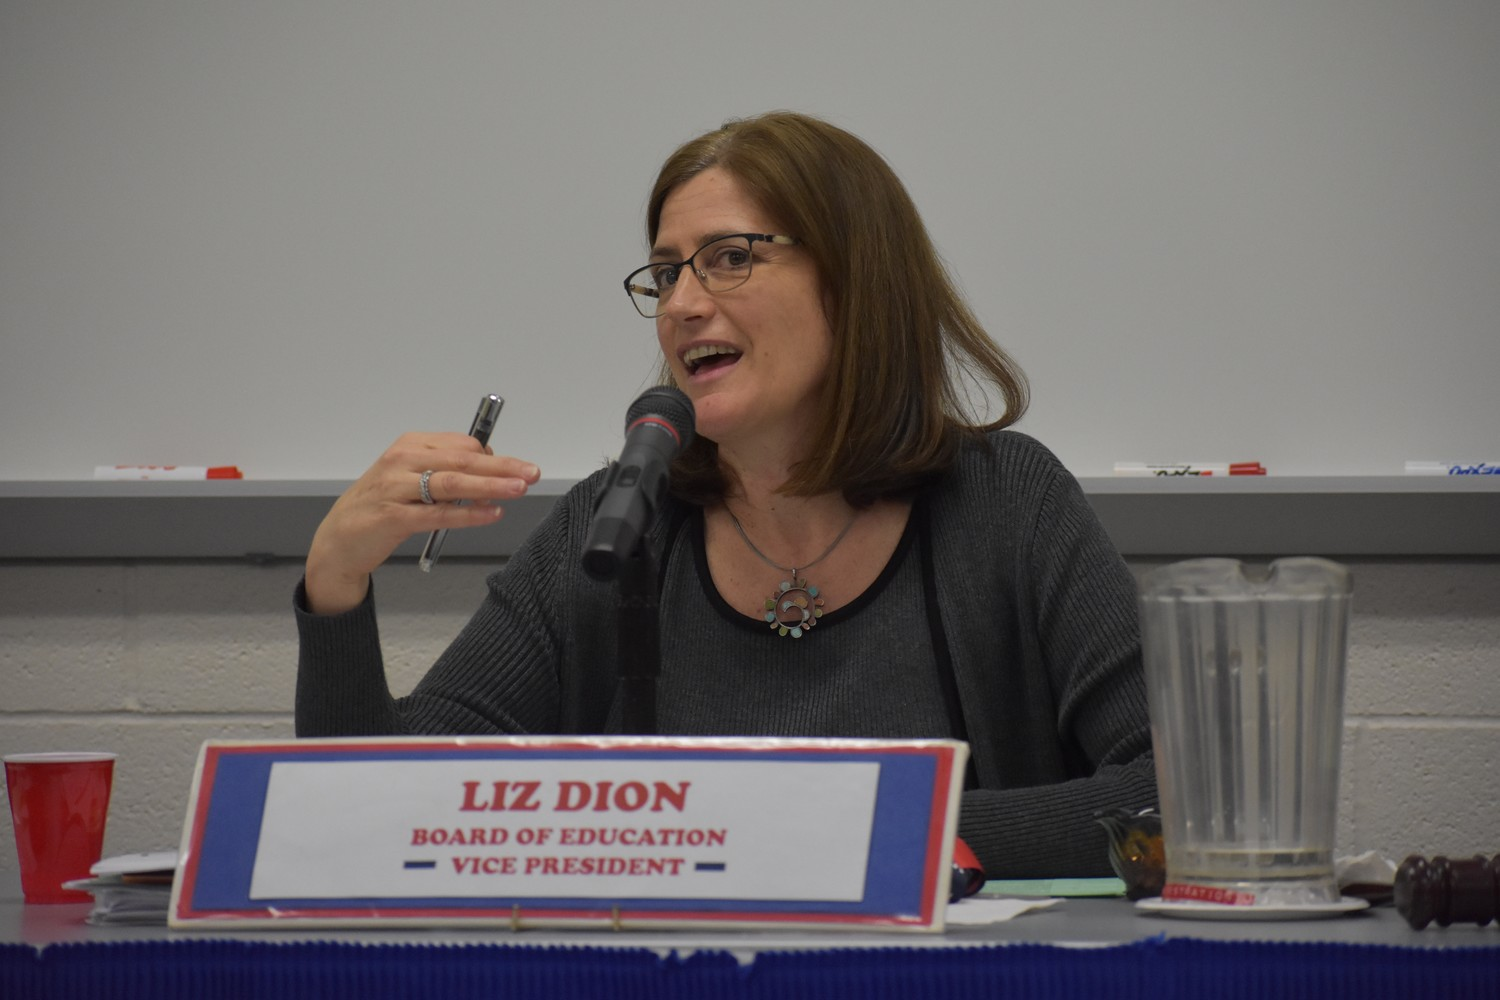 Liz Dion, vice president of the Board of Education, voiced support for the walkout during a meeting on Feb. 28.